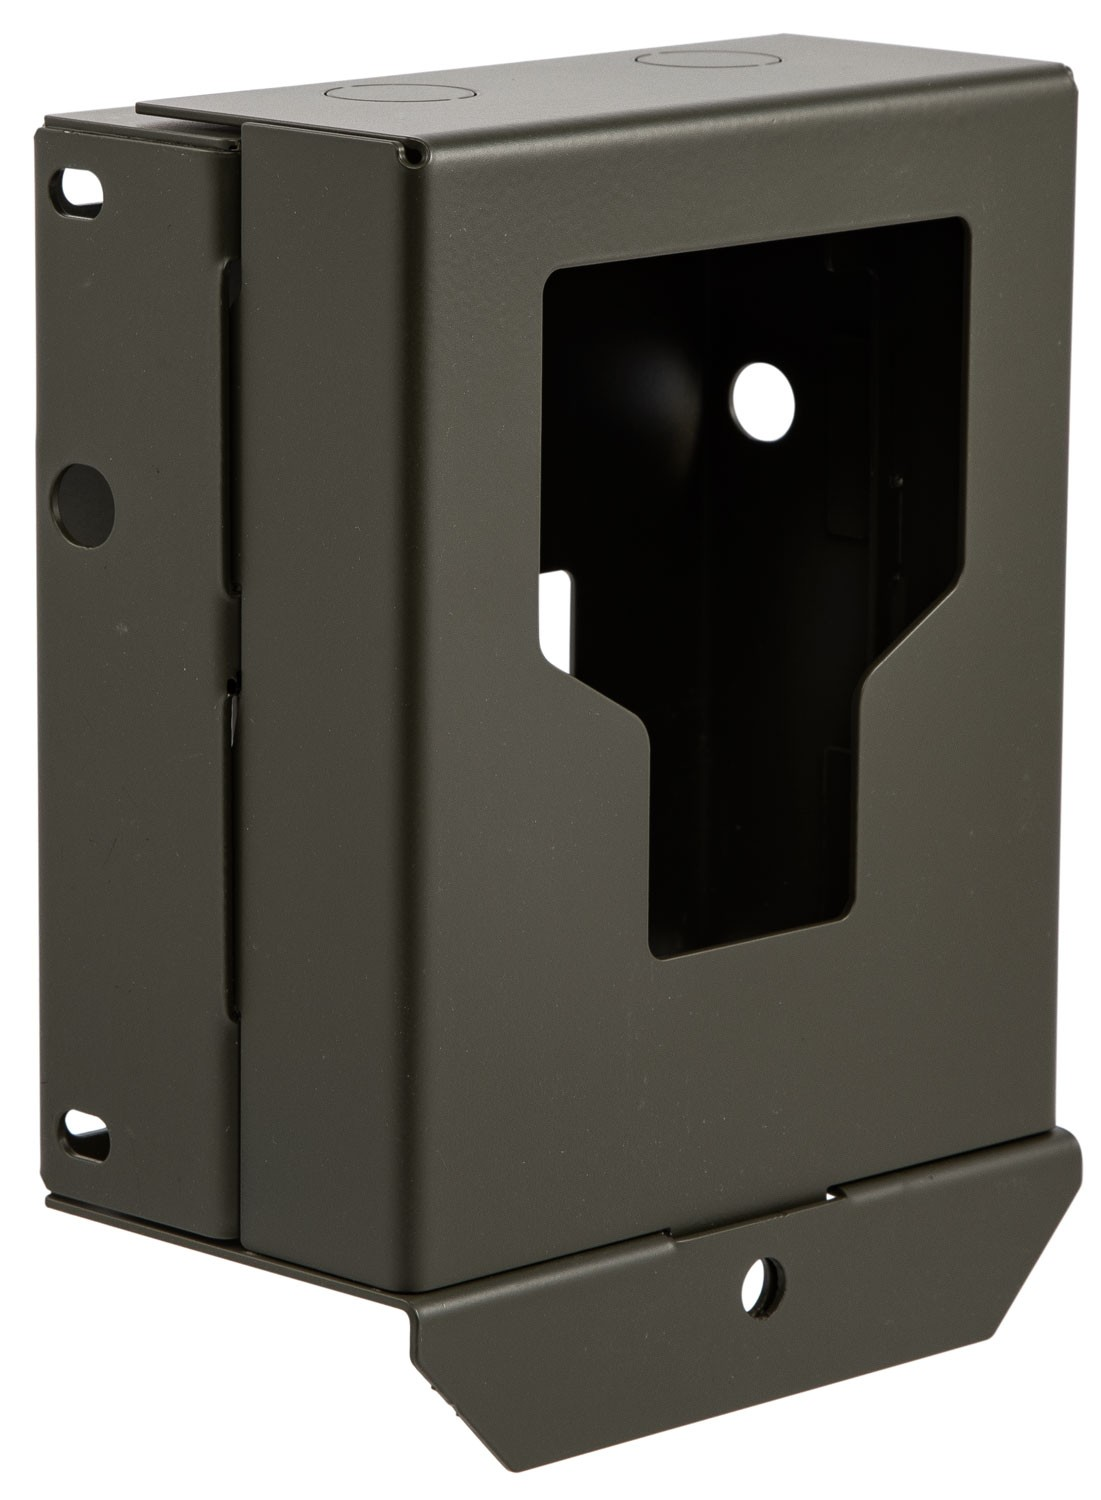 Covert Scouting Cameras 5601 E1 Bear Safe Security Camera Box Black Steel